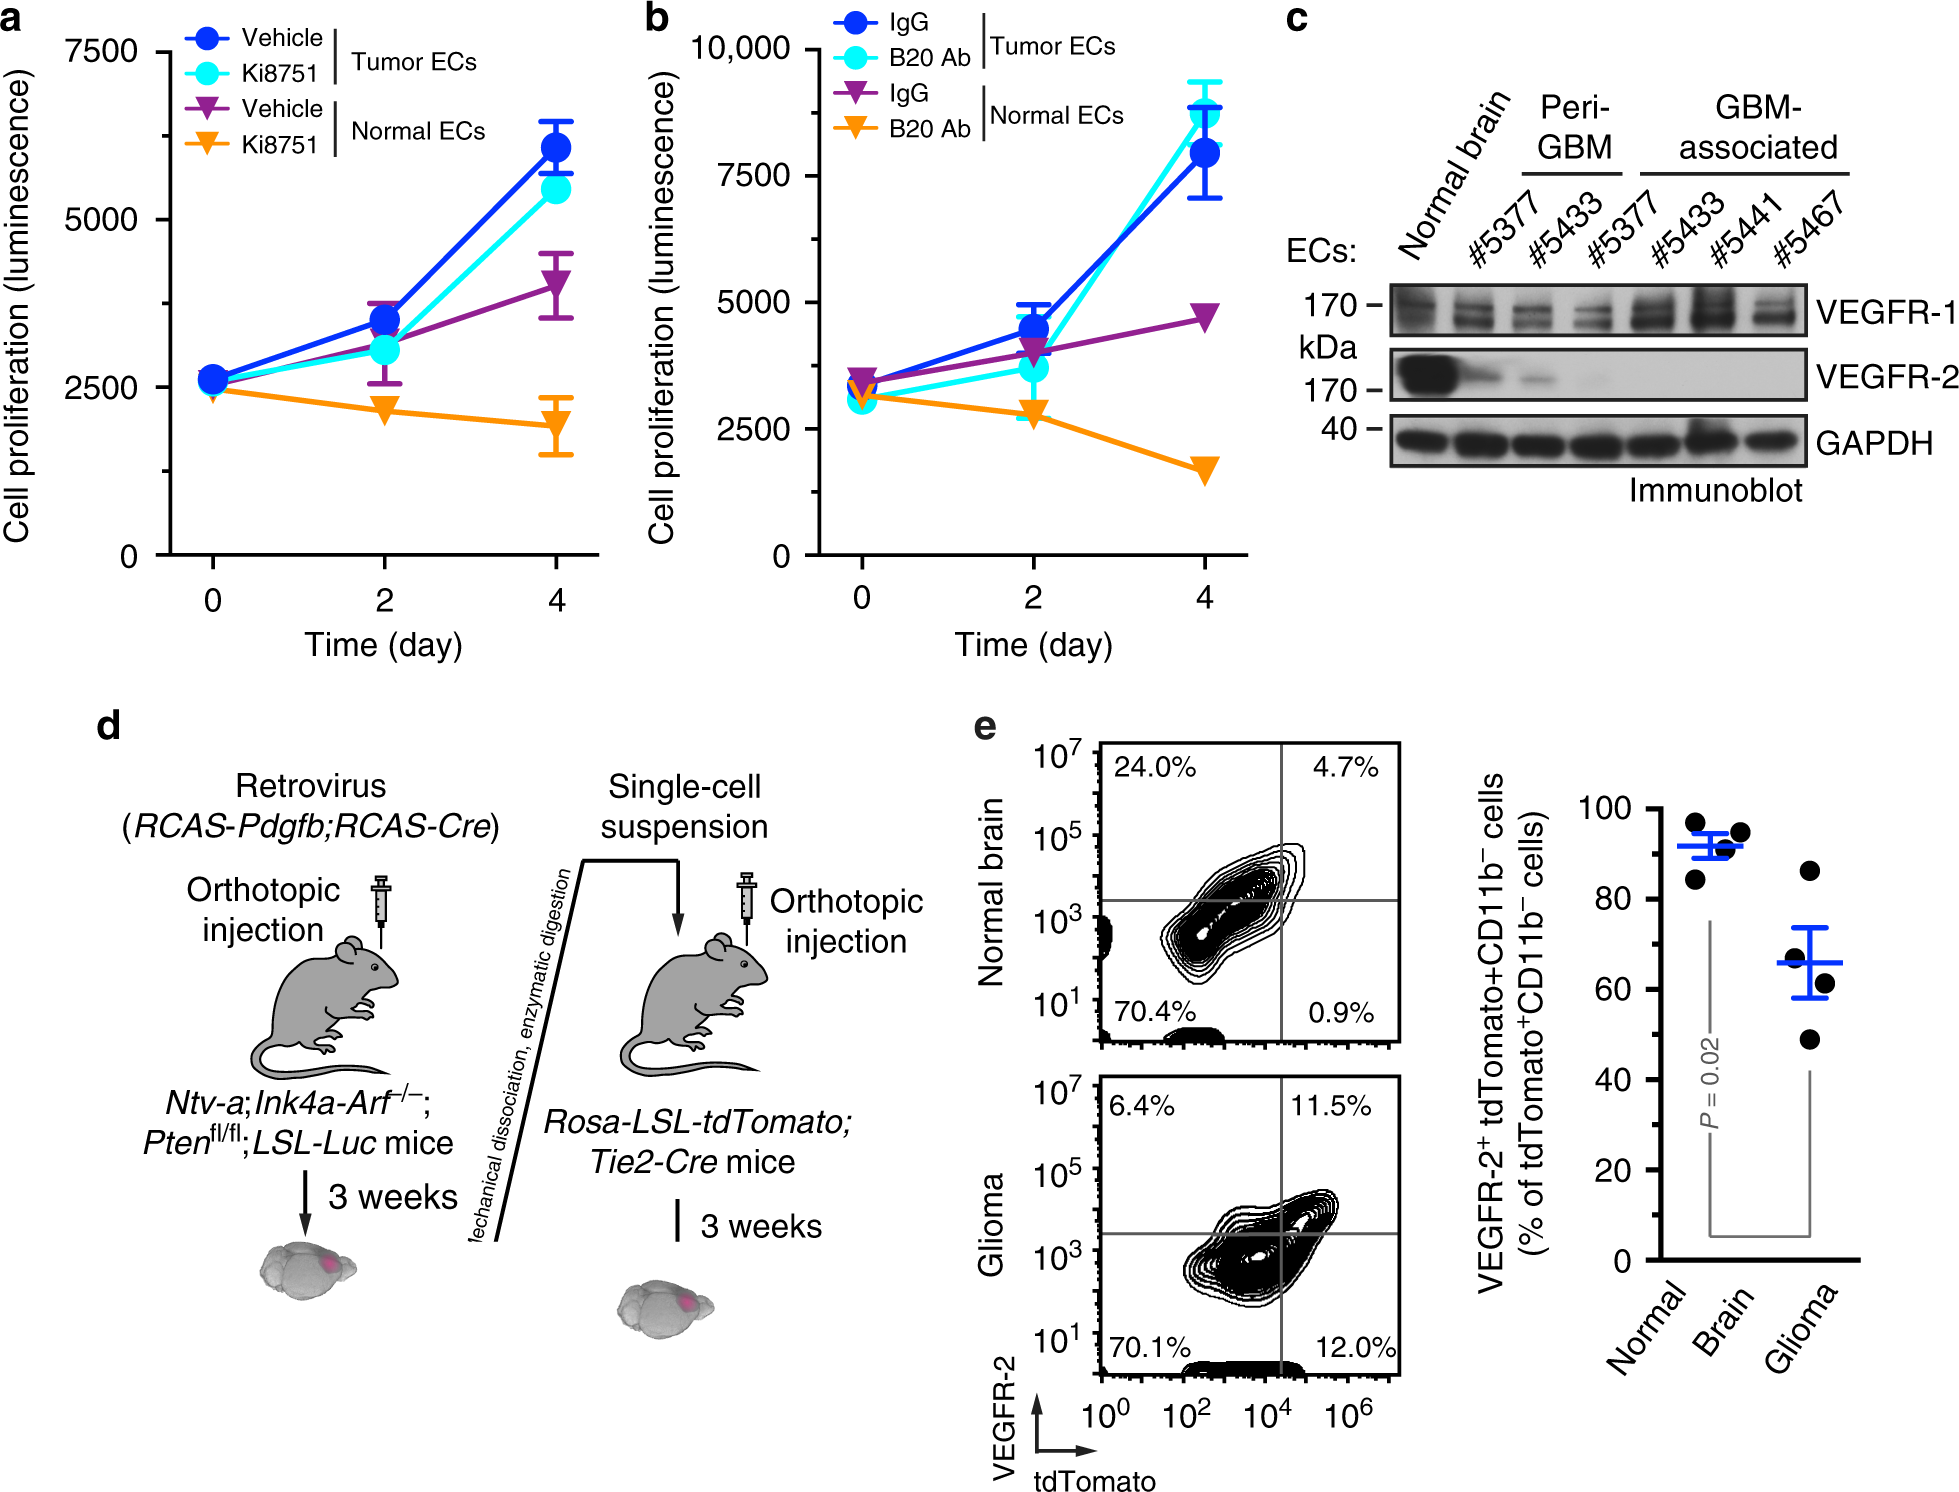 Pdgf Mediated Mesenchymal Transformation Renders Endothelial Z Transform Transfer Function Block Diagram Resistance To Anti Vegf Treatment In Glioblastoma Nature Communications